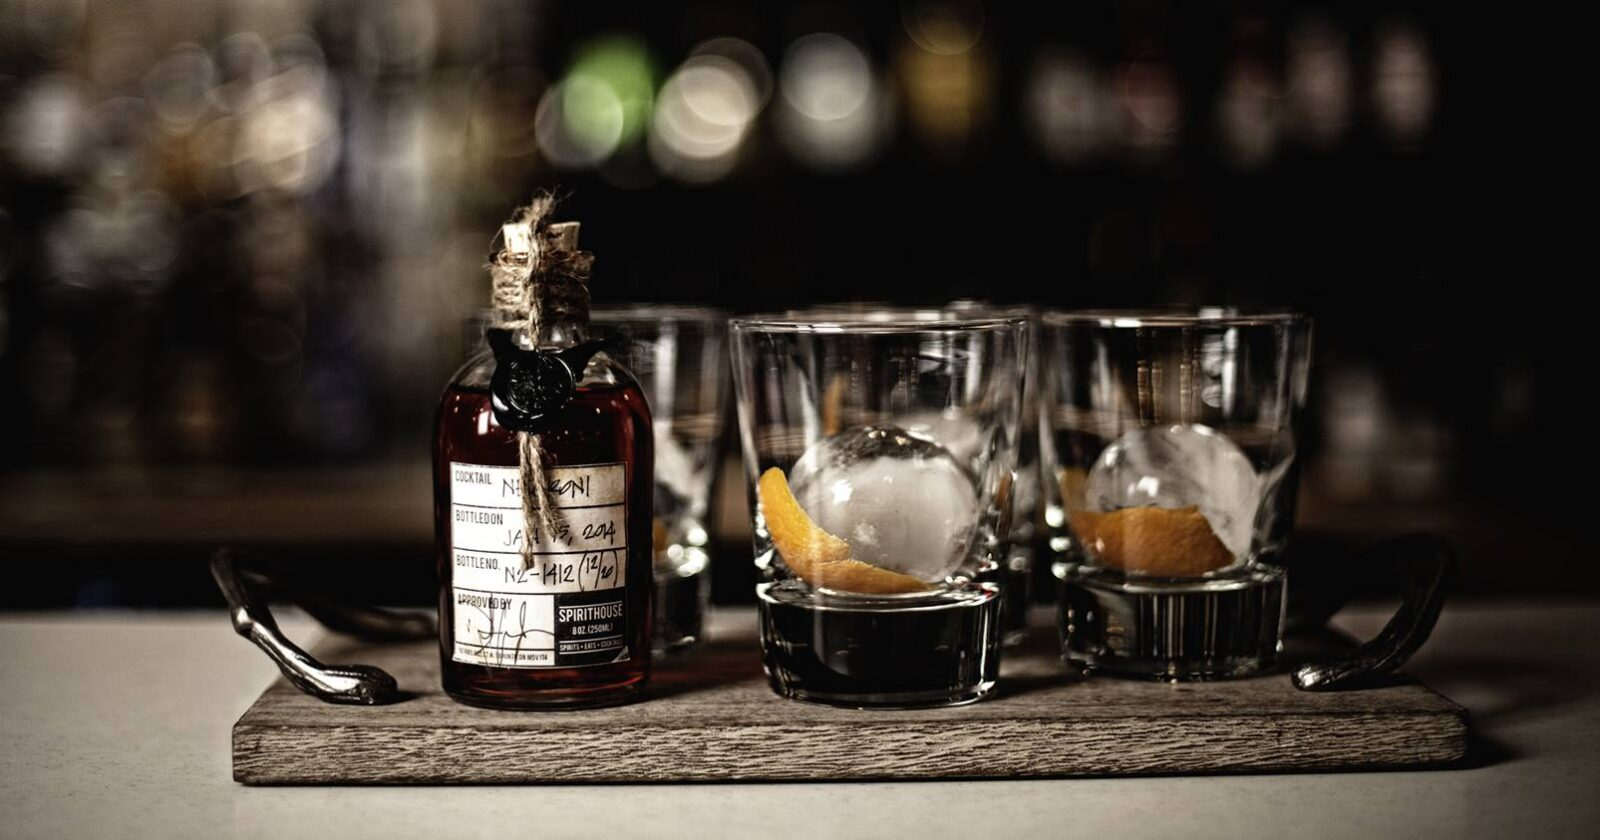 The Spirit House | Haute mixology in 5 quotes